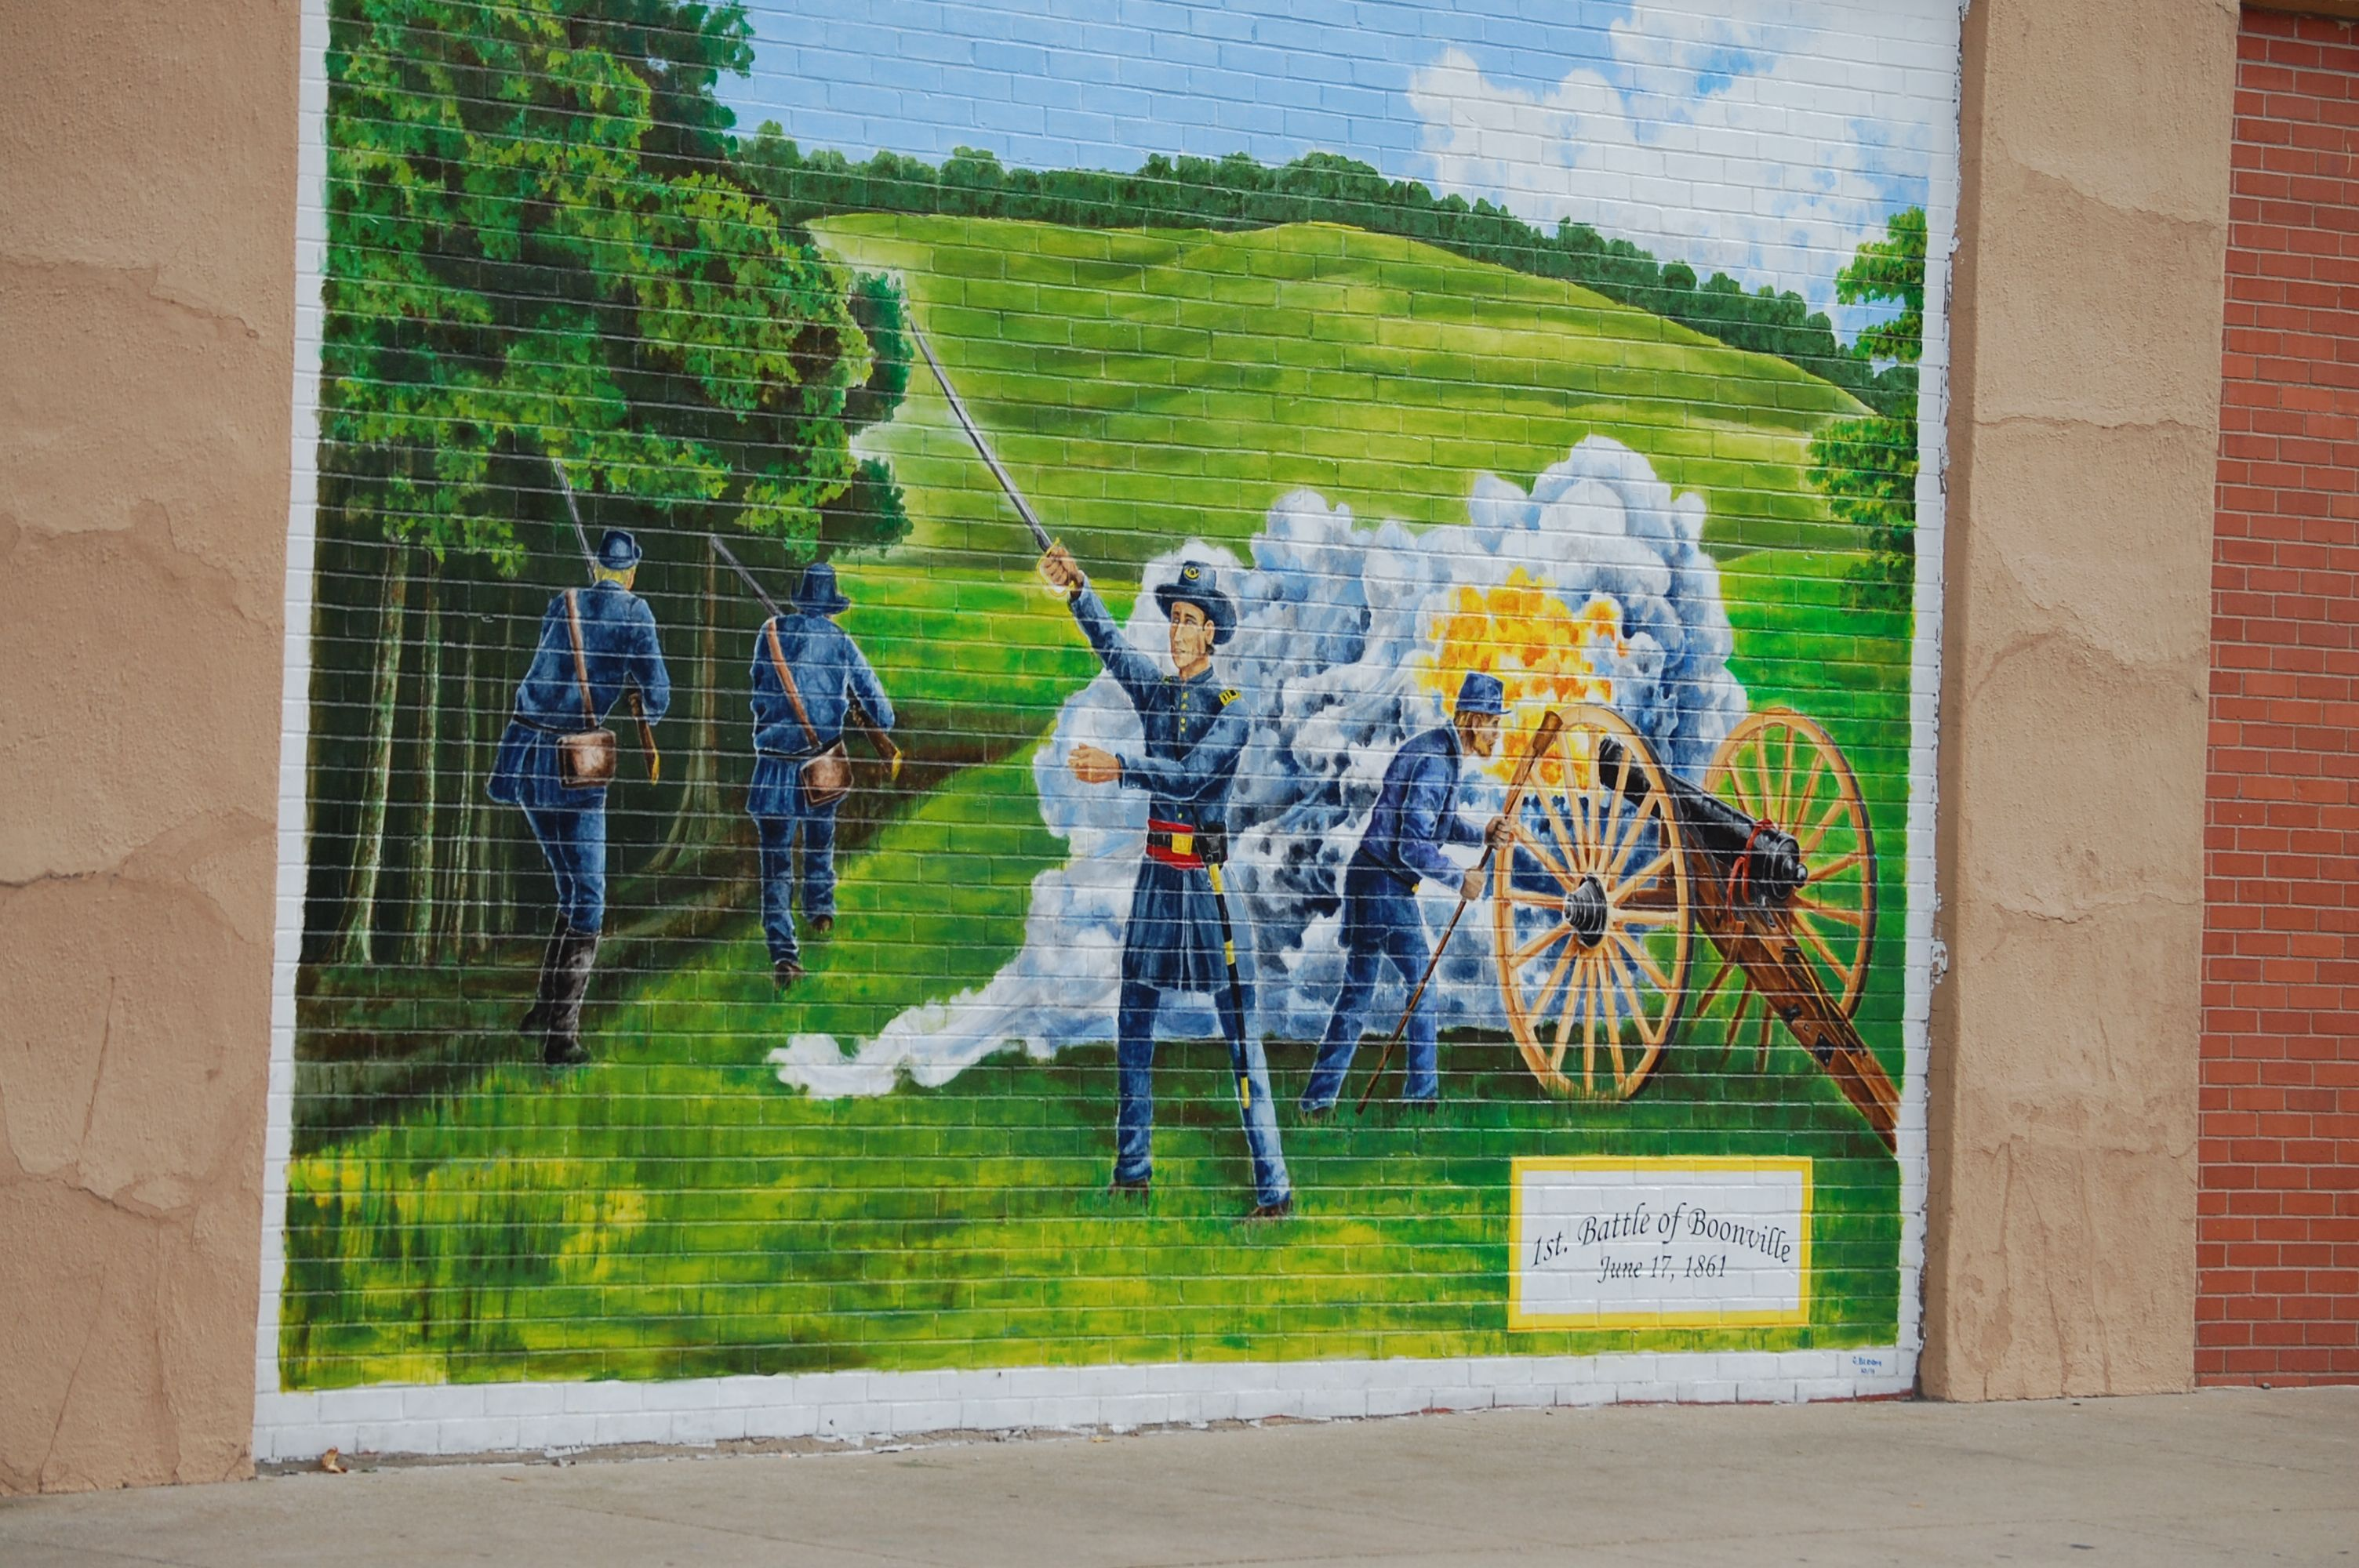 Wall Mural Depicting Civil War In Boonville, Missouri